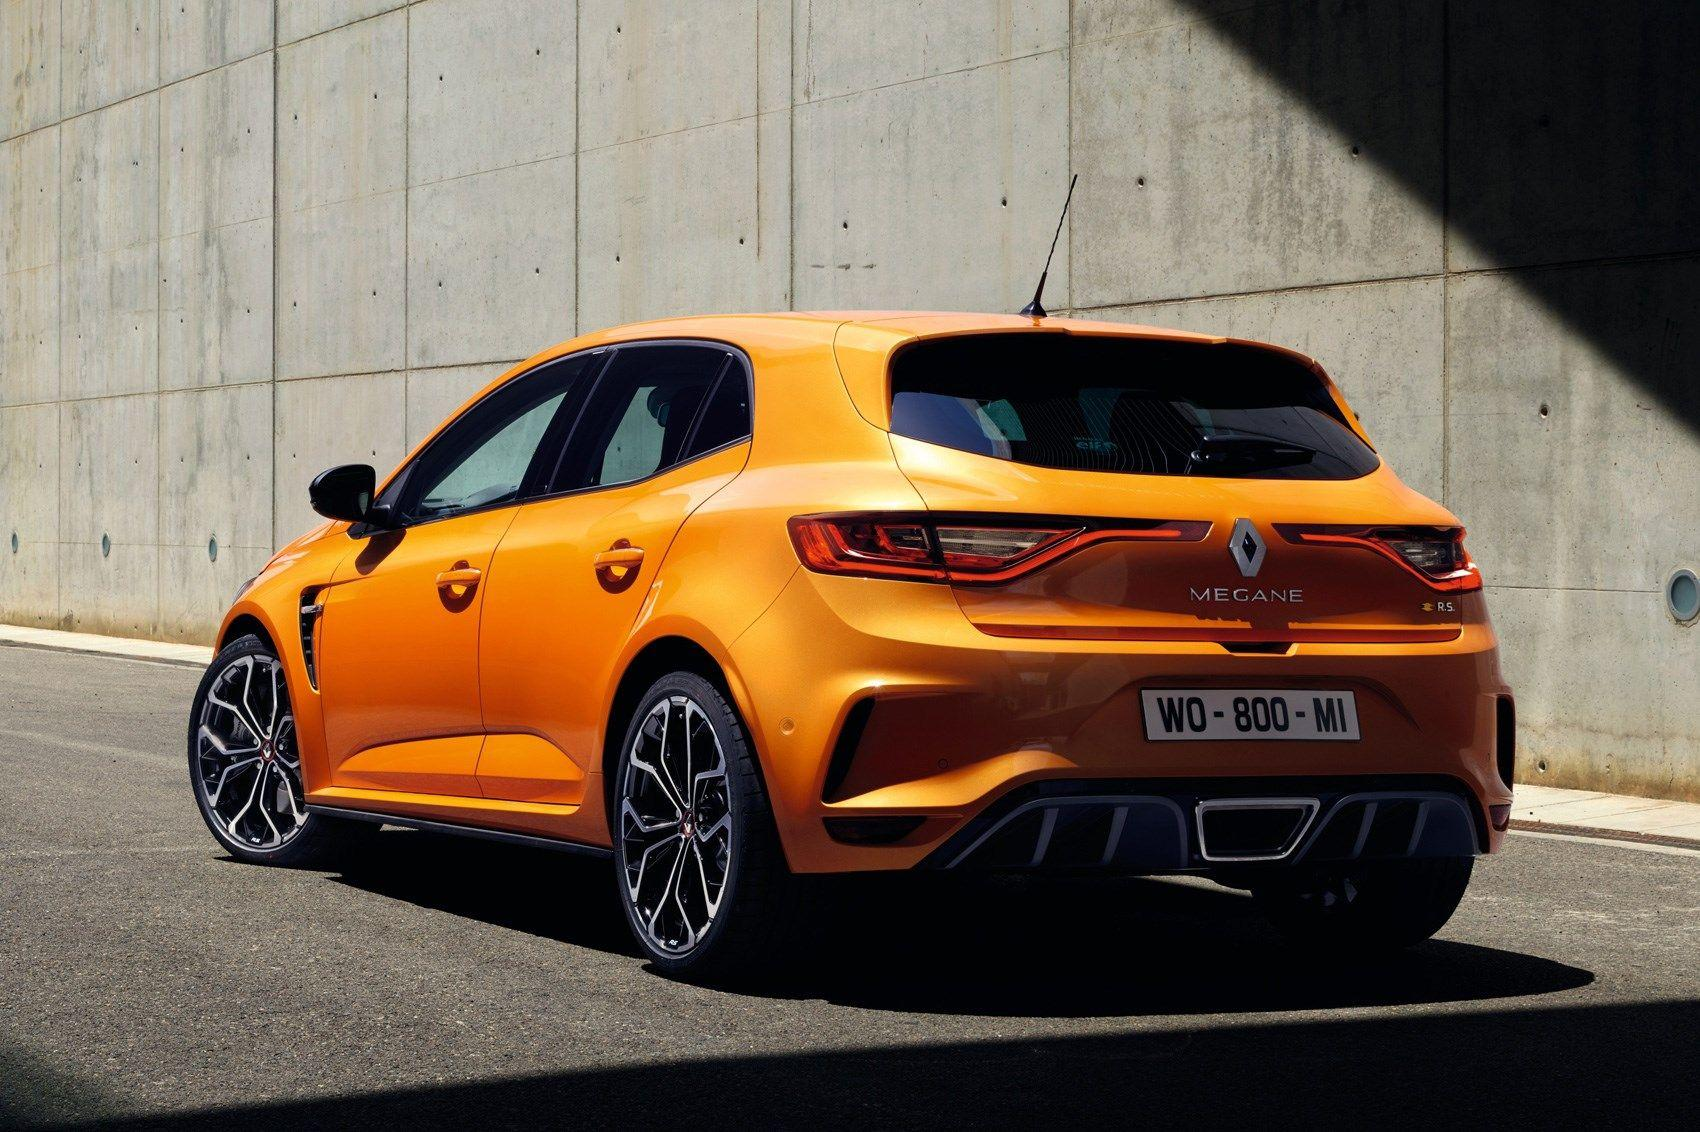 New 2018 Renault Megane RS: price, performance, specs and more by